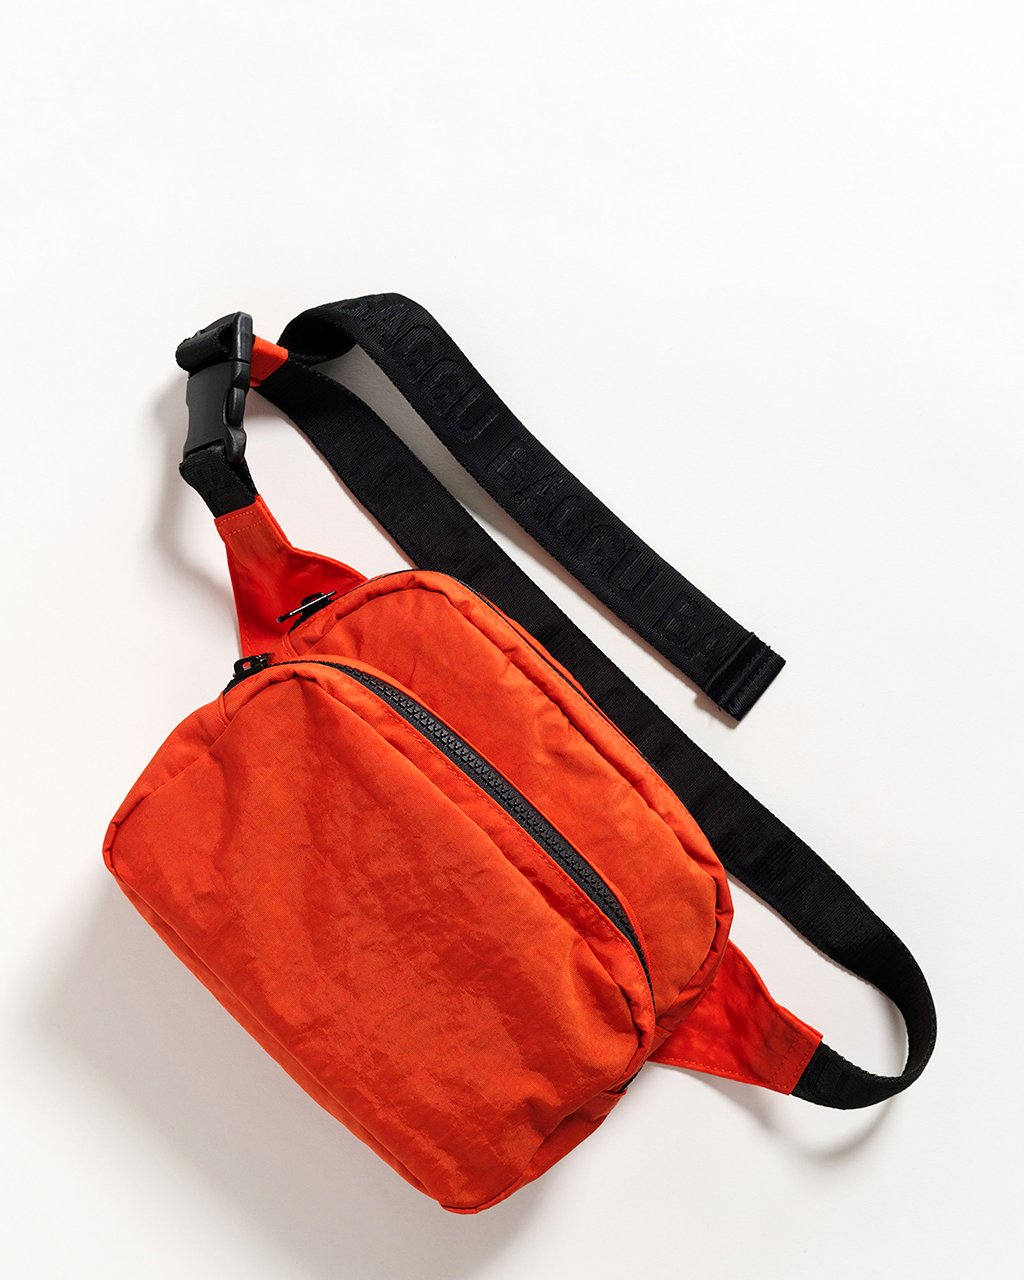 Bright red nylon fanny pack with a 48 inch strap